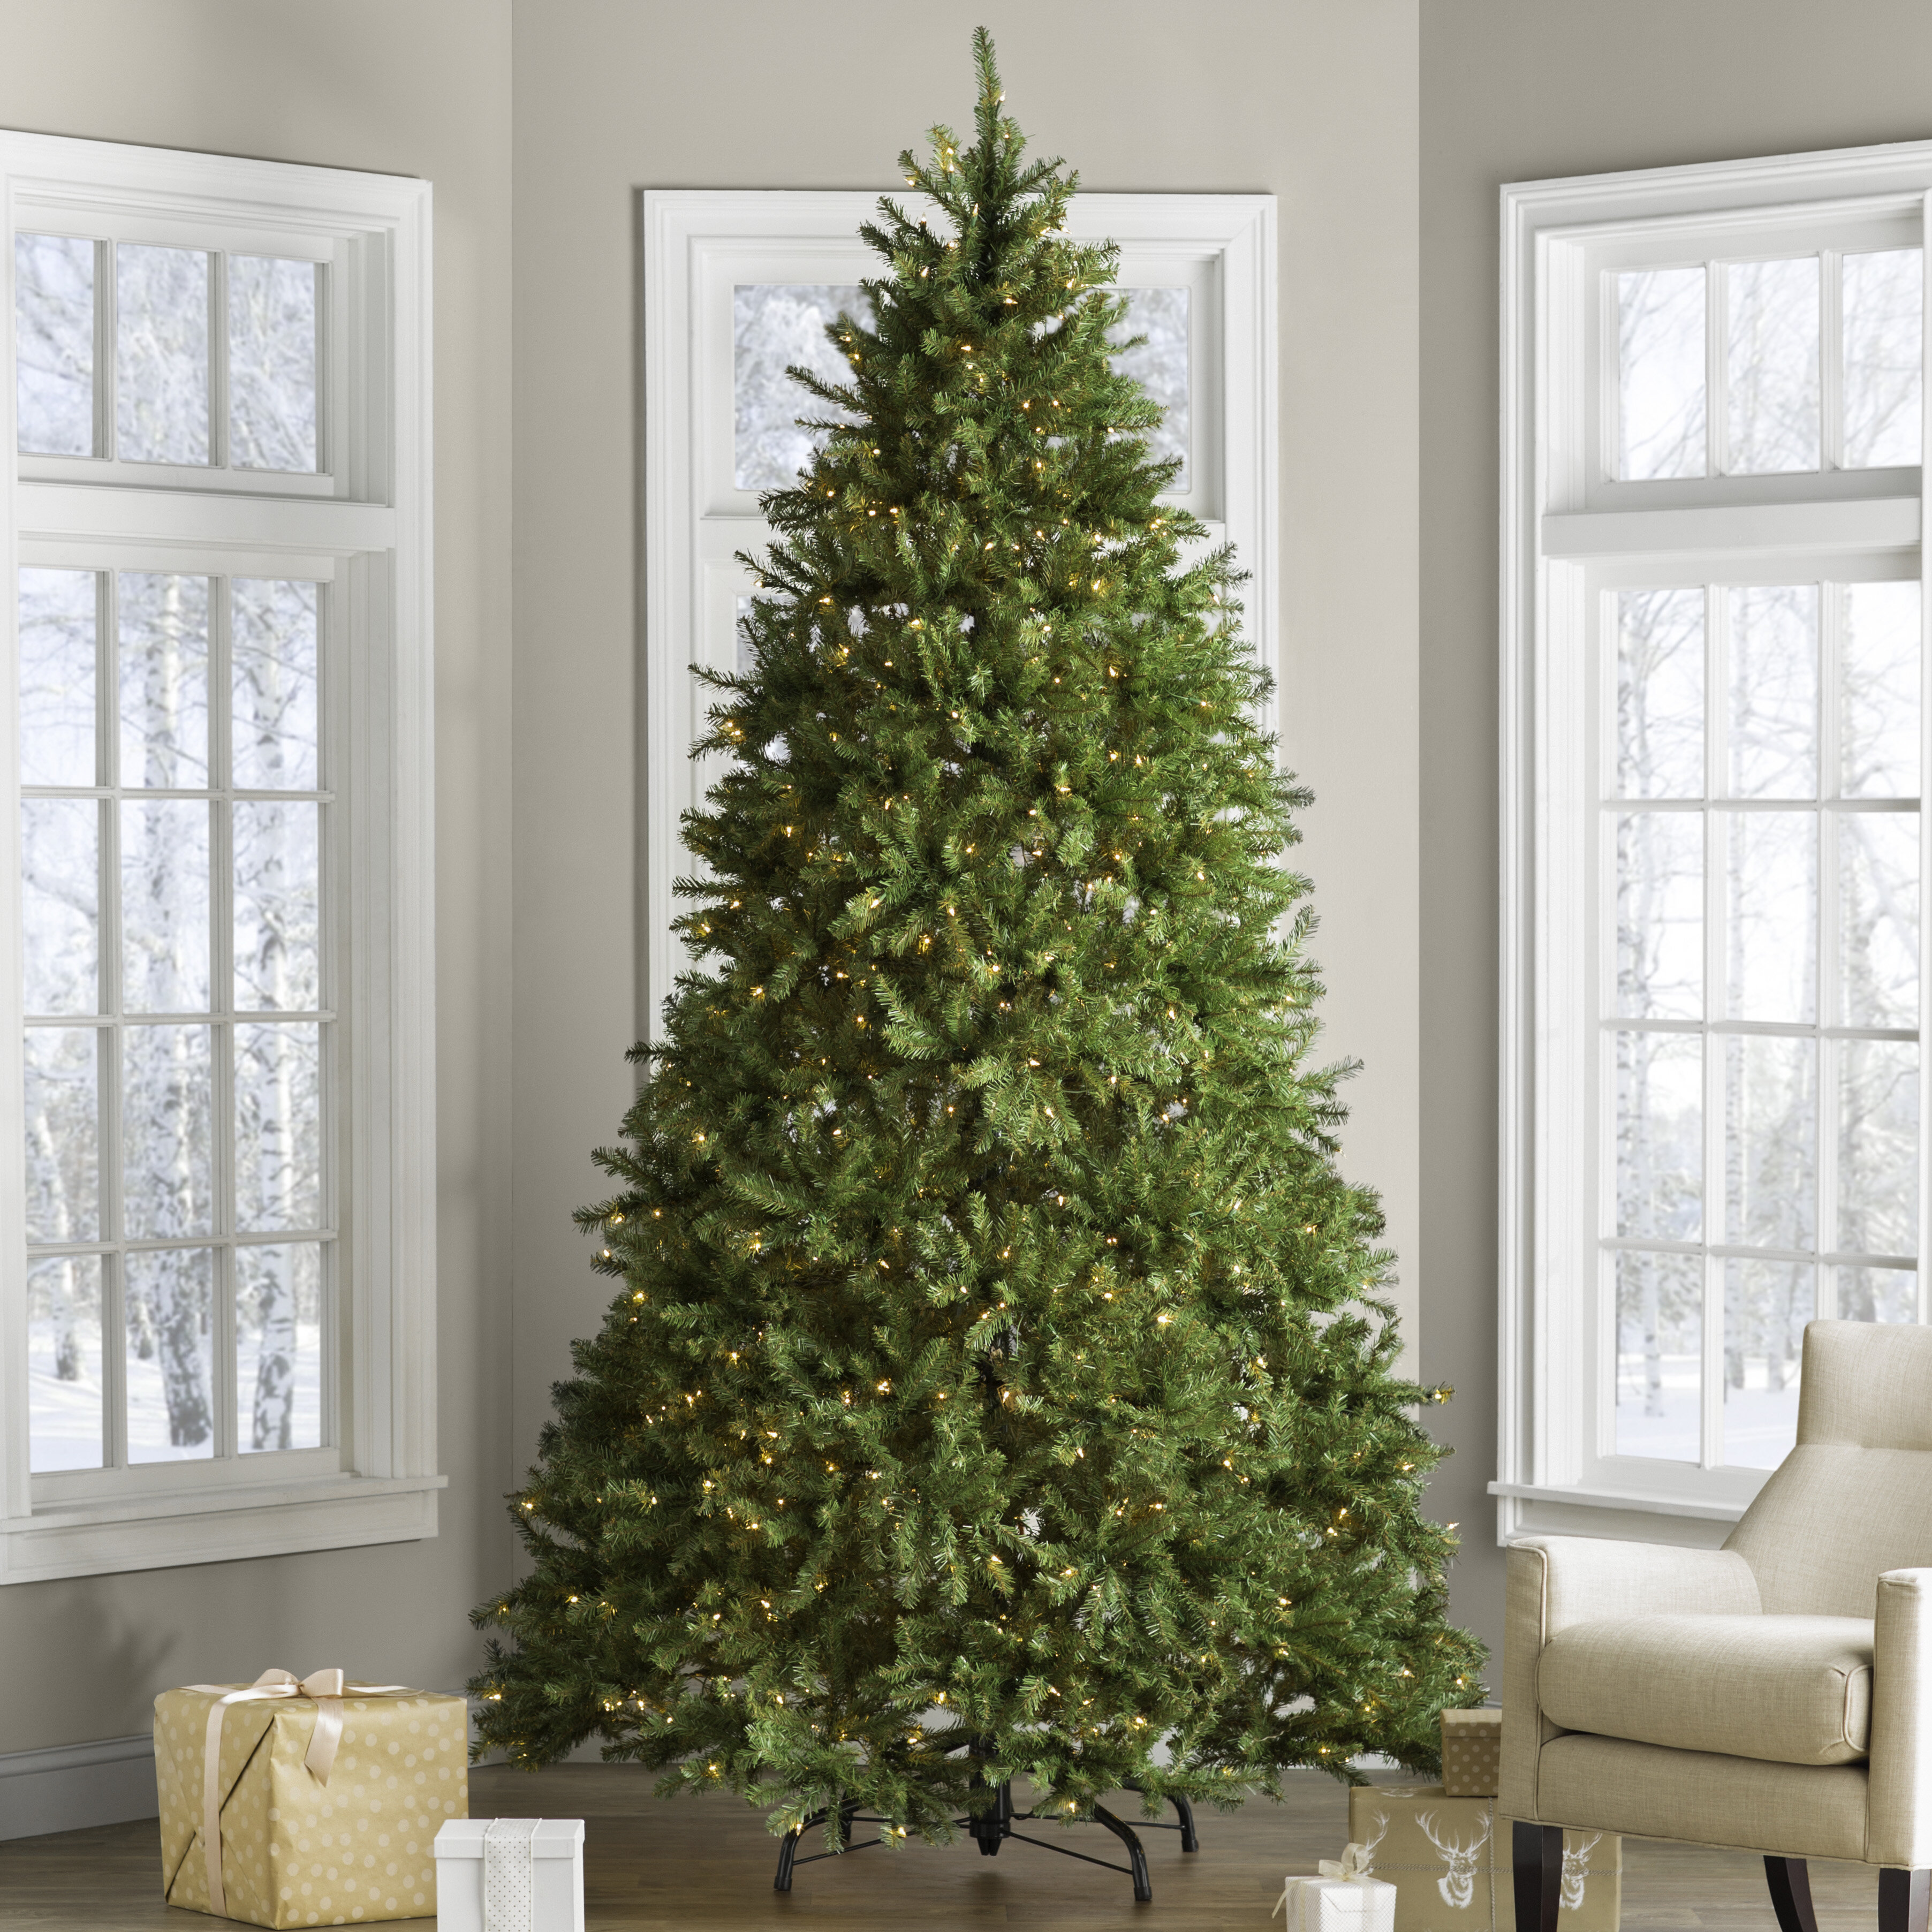 Hinged 9' Green Fir Artificial Christmas Tree with 900 Clear/White Lights & Reviews | Birch Lane